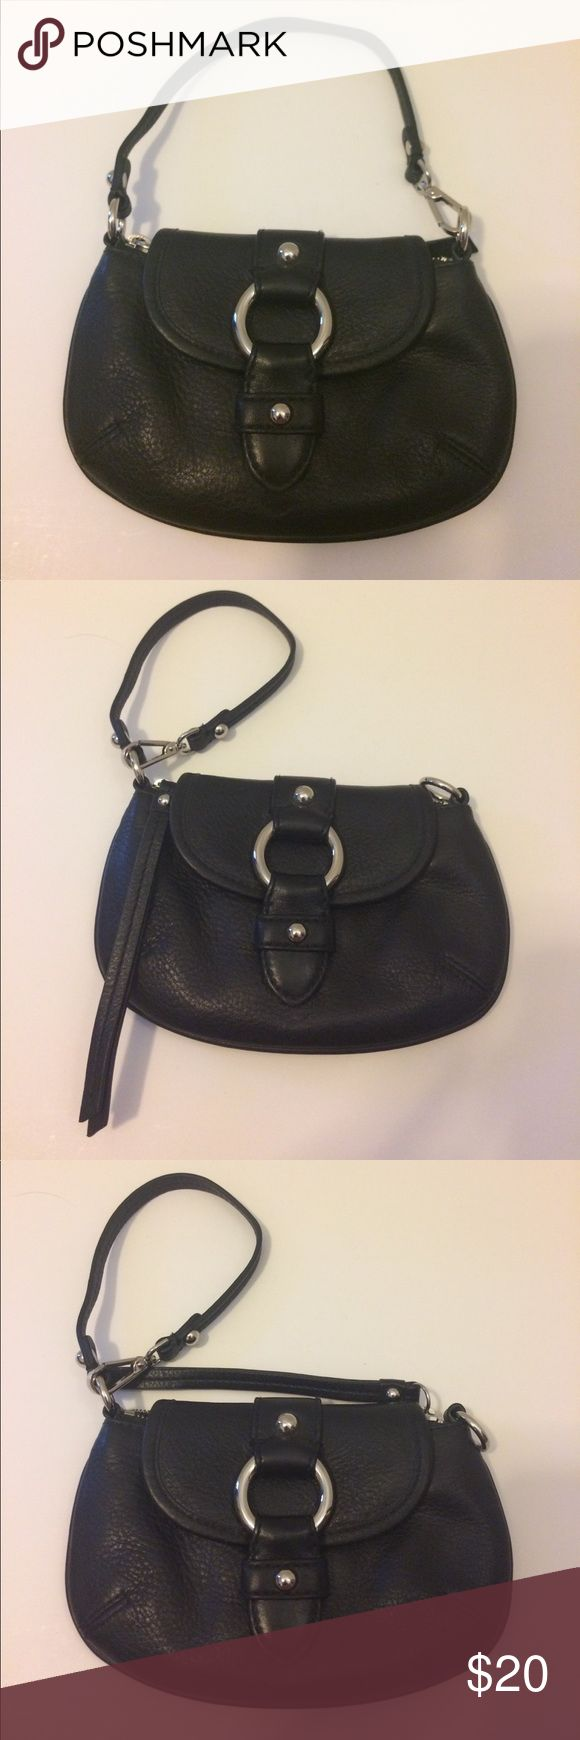 "Banana Republic Black Leather Wristlet EUC EUC black leather convertible wristlet. Magnetic flap closure with zipper closure. Has slots to hold your ID and/or credit cards. Approximately 8"" x 5"". Banana Republic Bags Clutches & Wristlets"